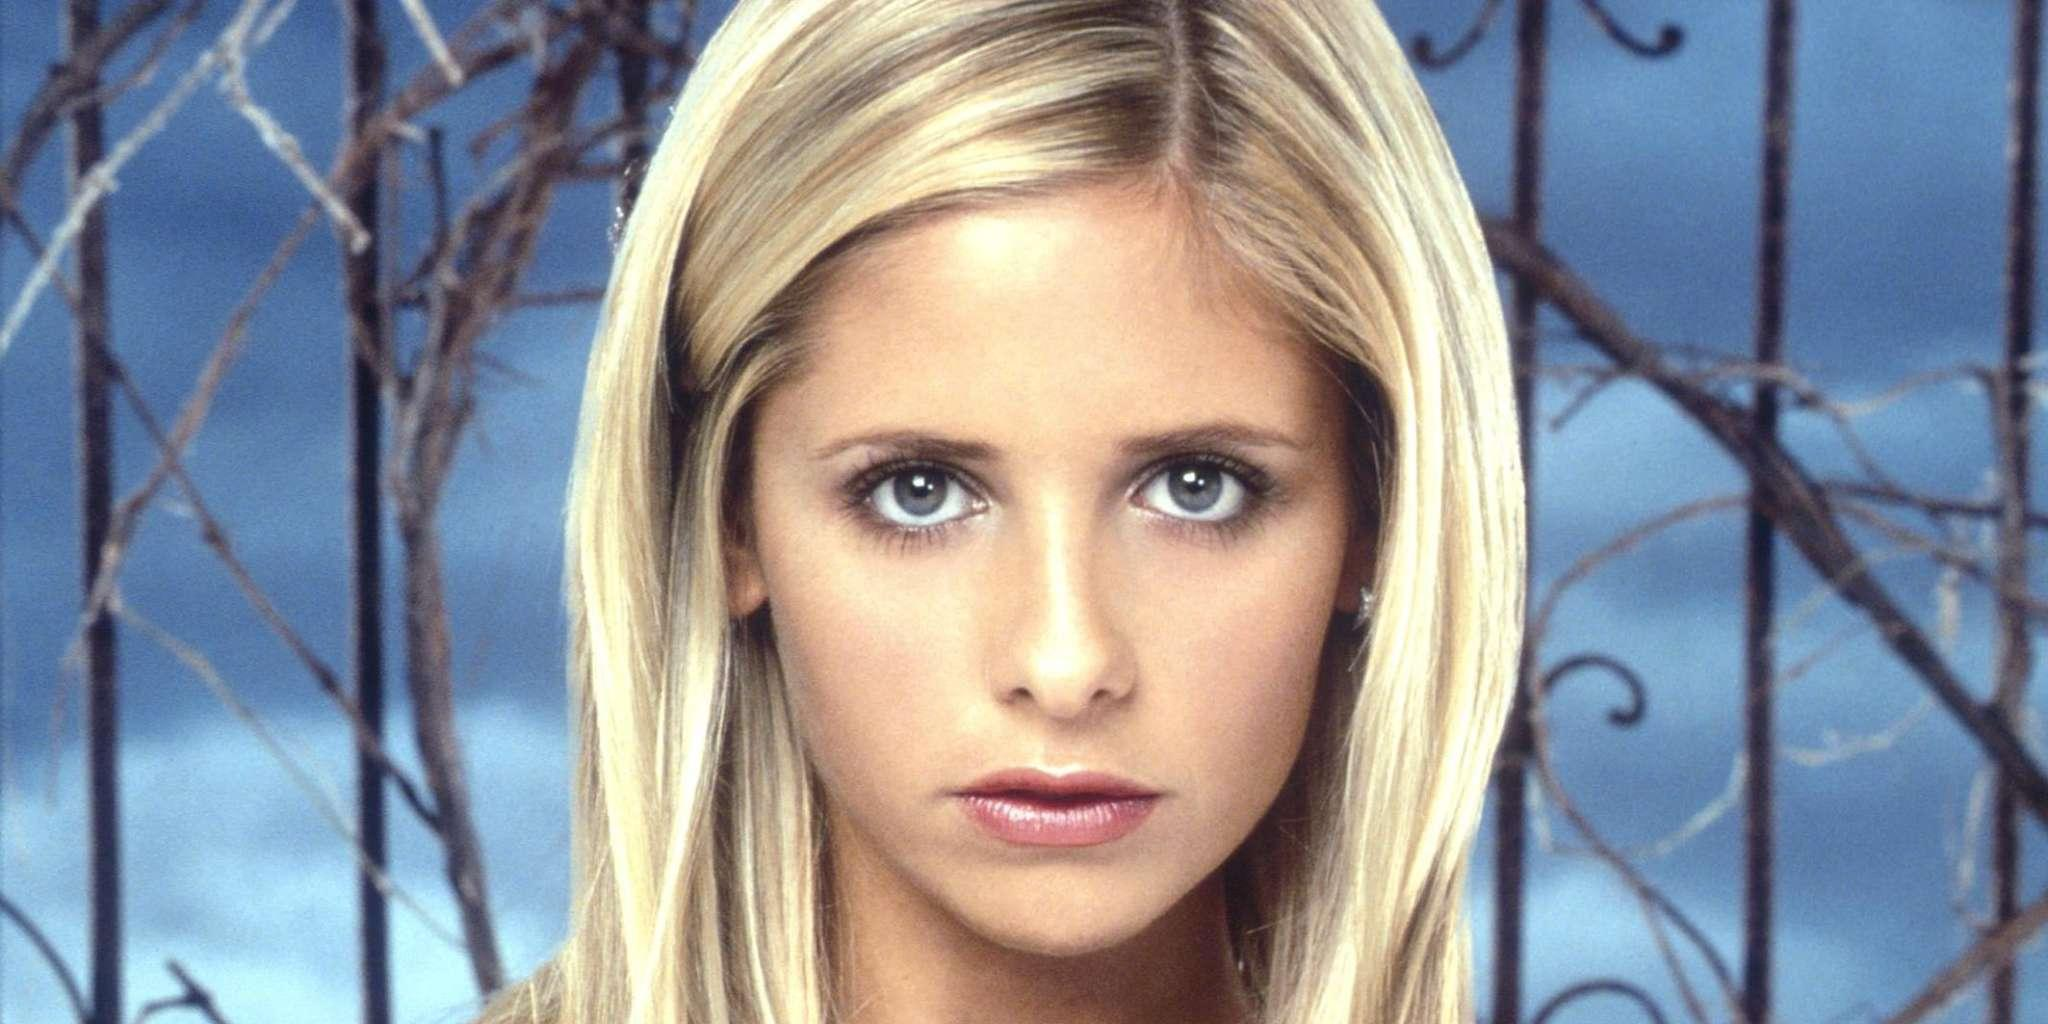 Sarah Michelle Gellar Makes Fun Of Her 'Buffy The Vampire Slayer' Bangs By Saying They Looked Like All These Failed DIY 'Quarantine Haircuts!'